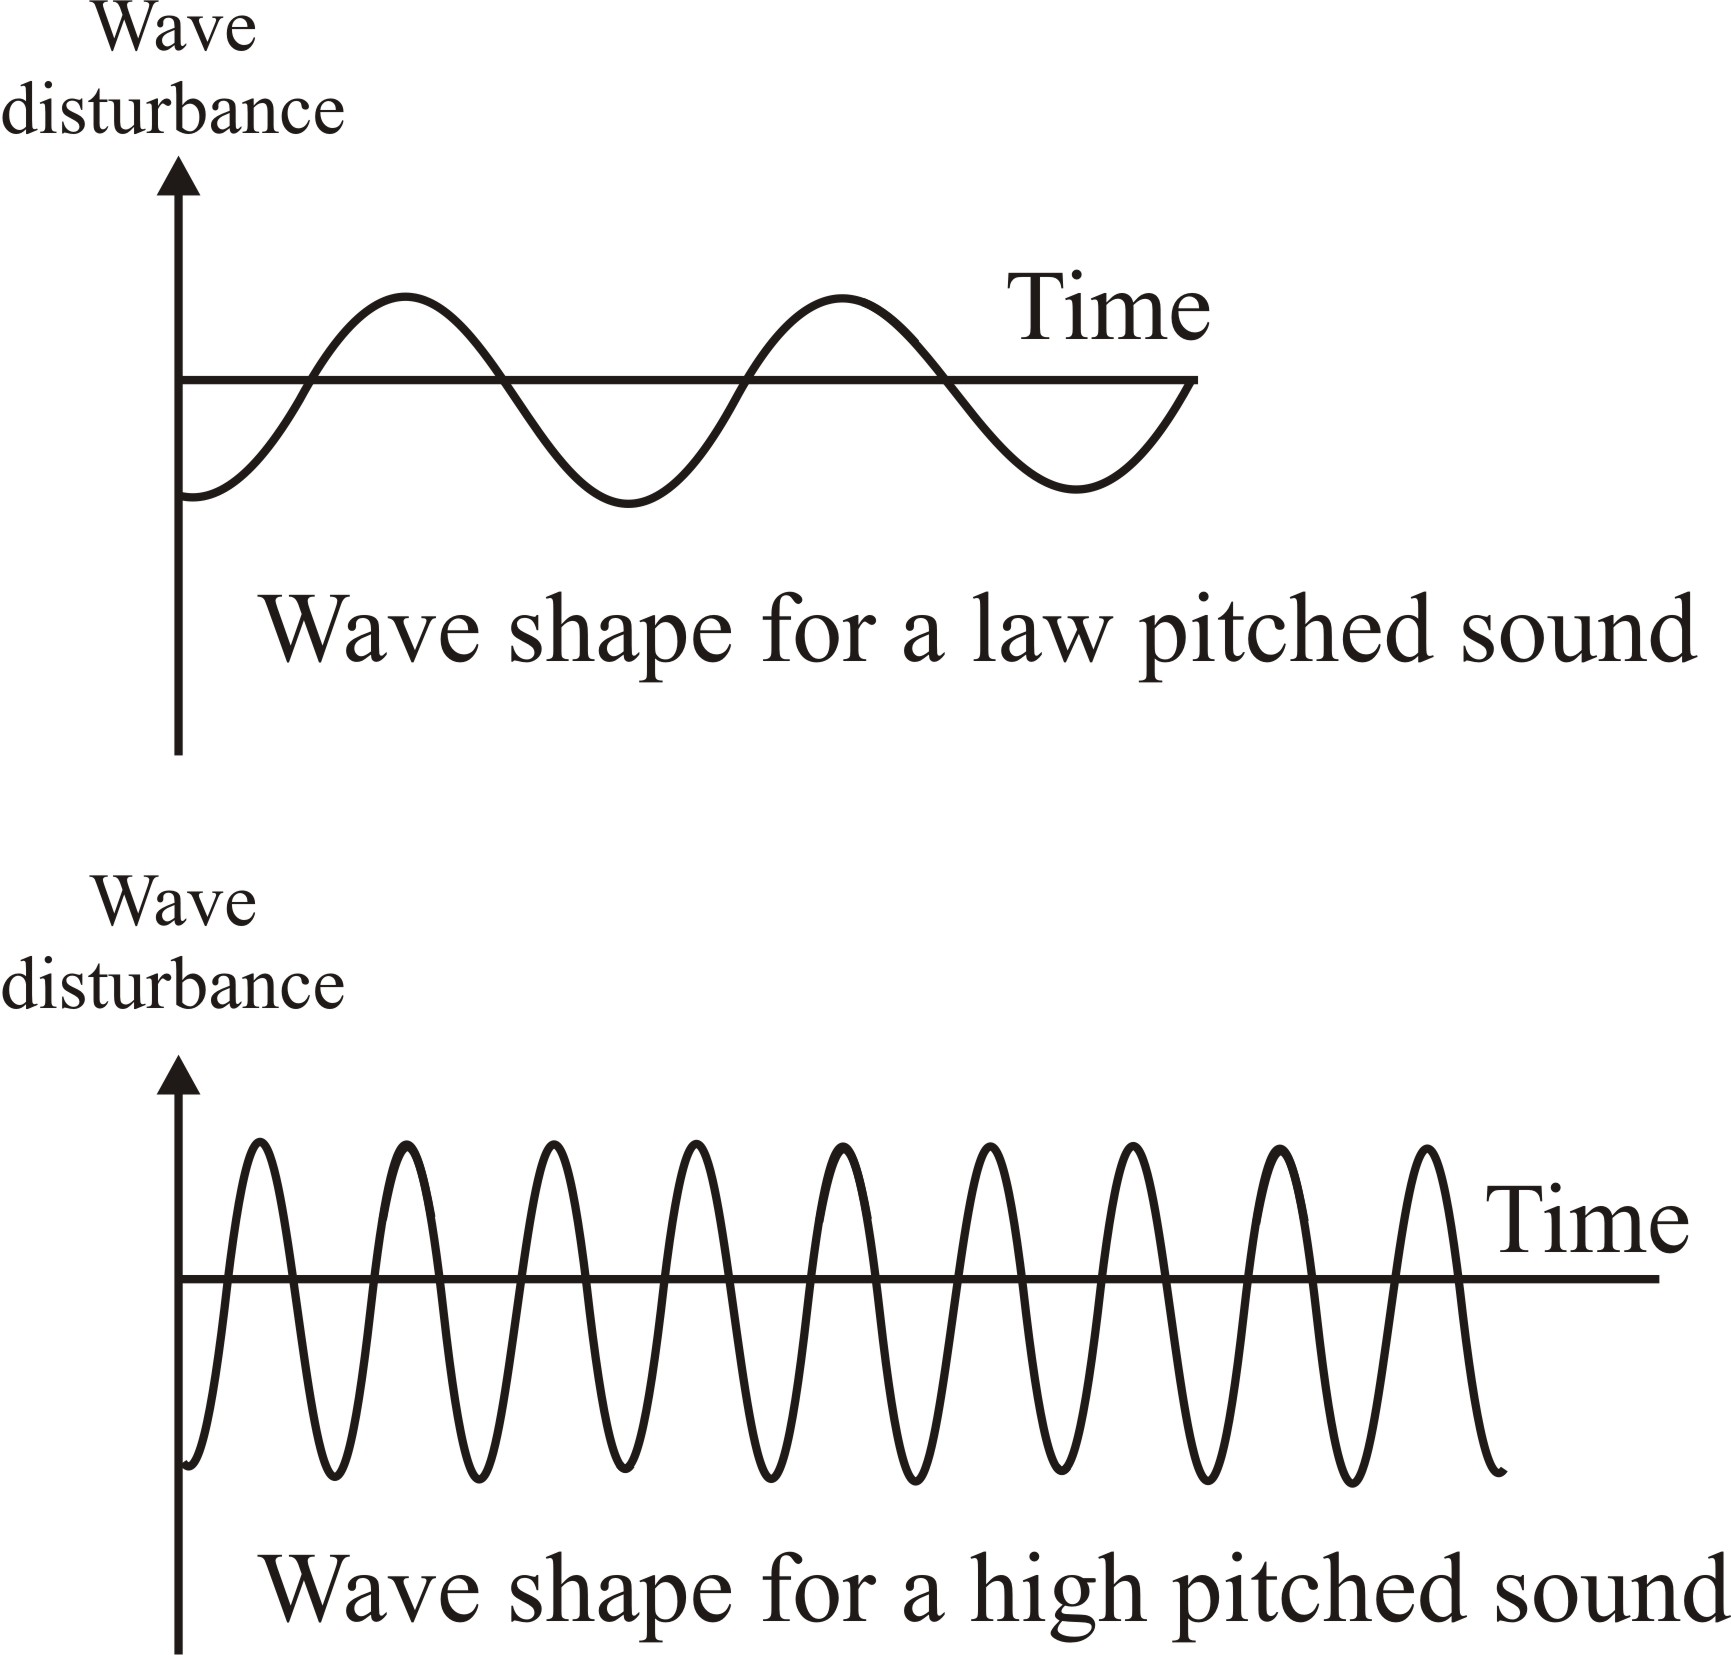 In Which Medium Can Sound Waves Travel The Slowest